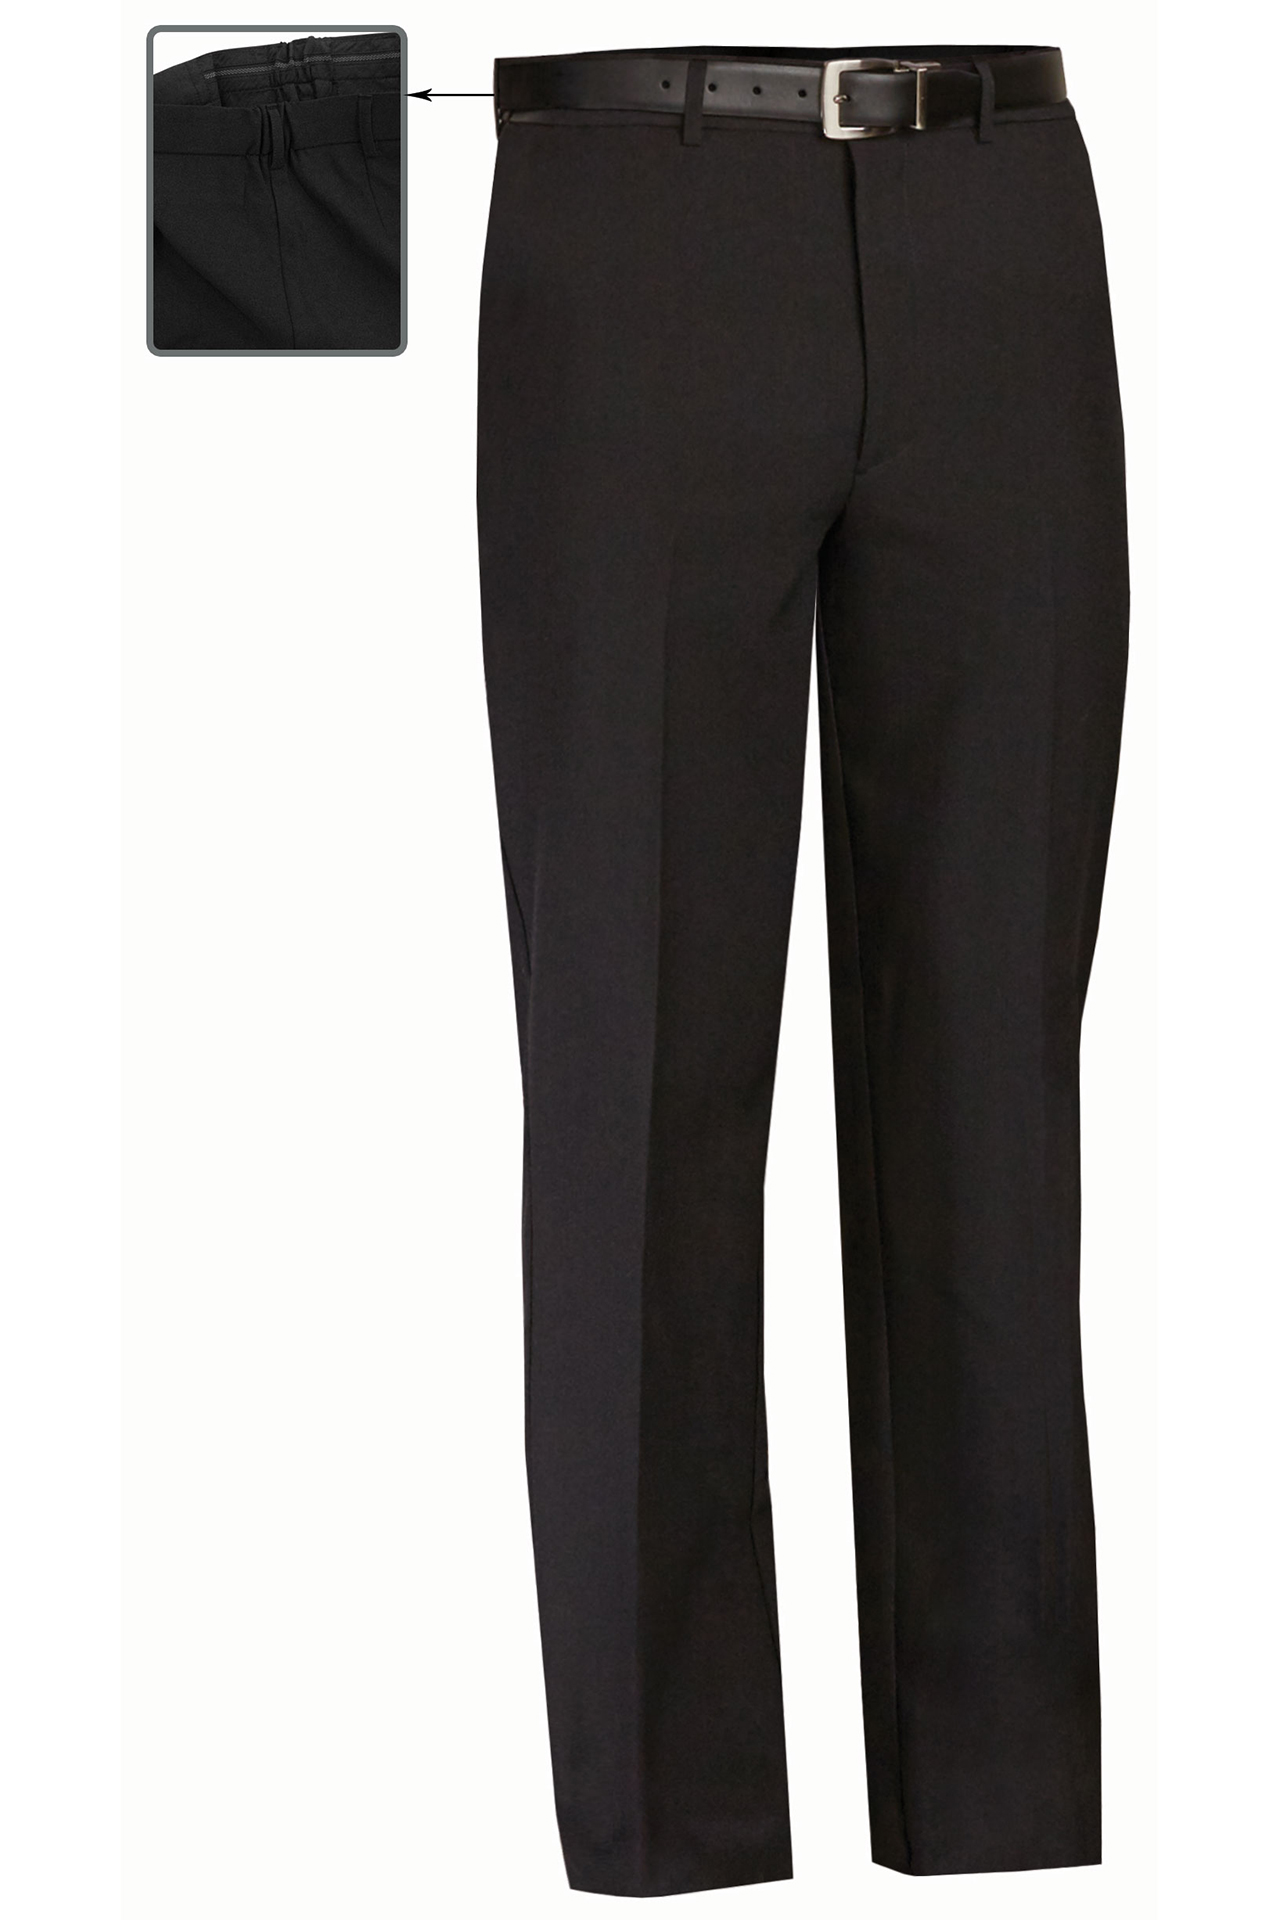 Mens Hospitality Pants, No Pockets-